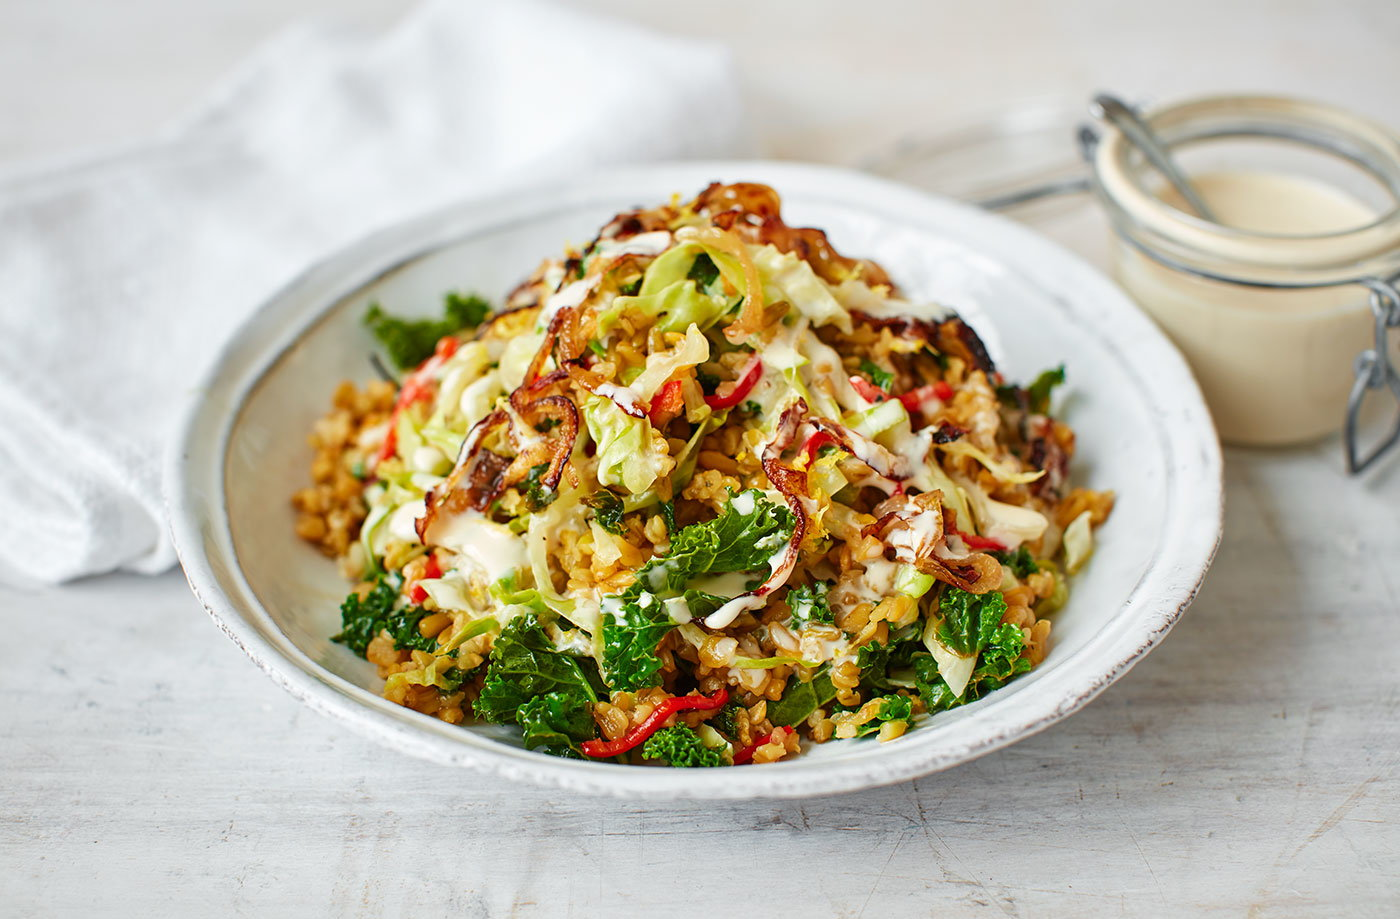 Lunch recipes lunch ideas tesco real food grains stir fried greens and tahini dressing forumfinder Image collections